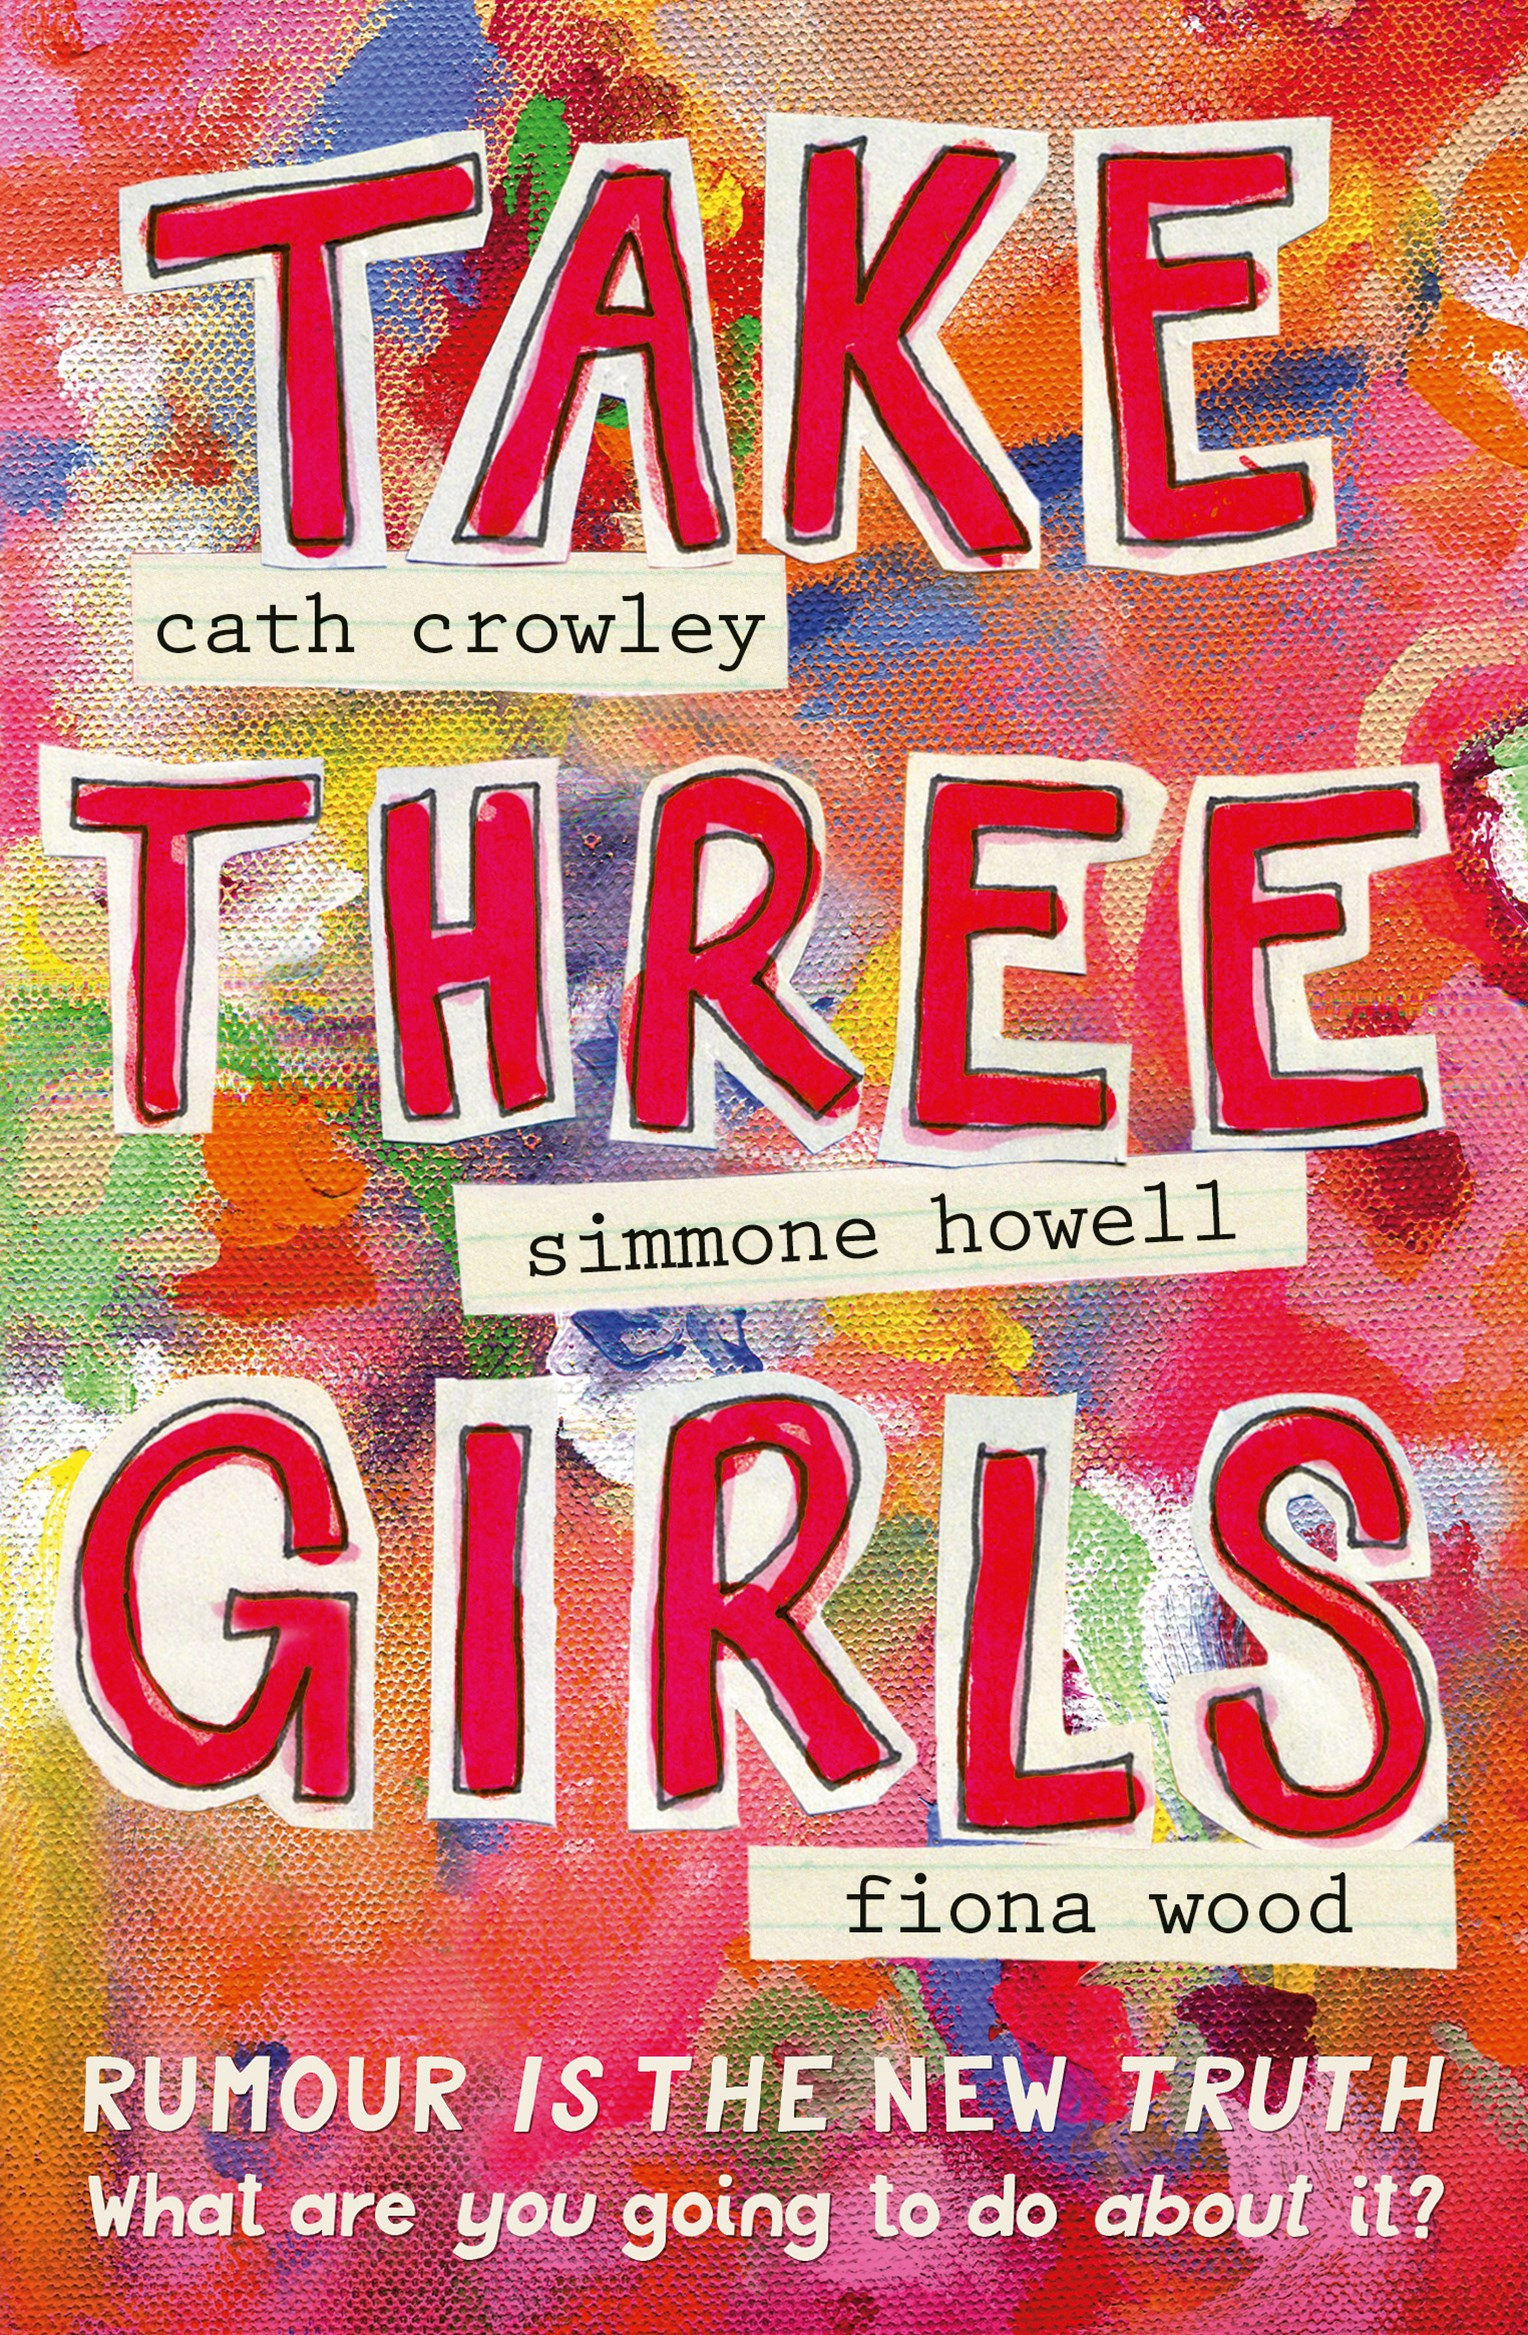 Meet authors Cath Crowley, Simmone Howell and Fiona Wood